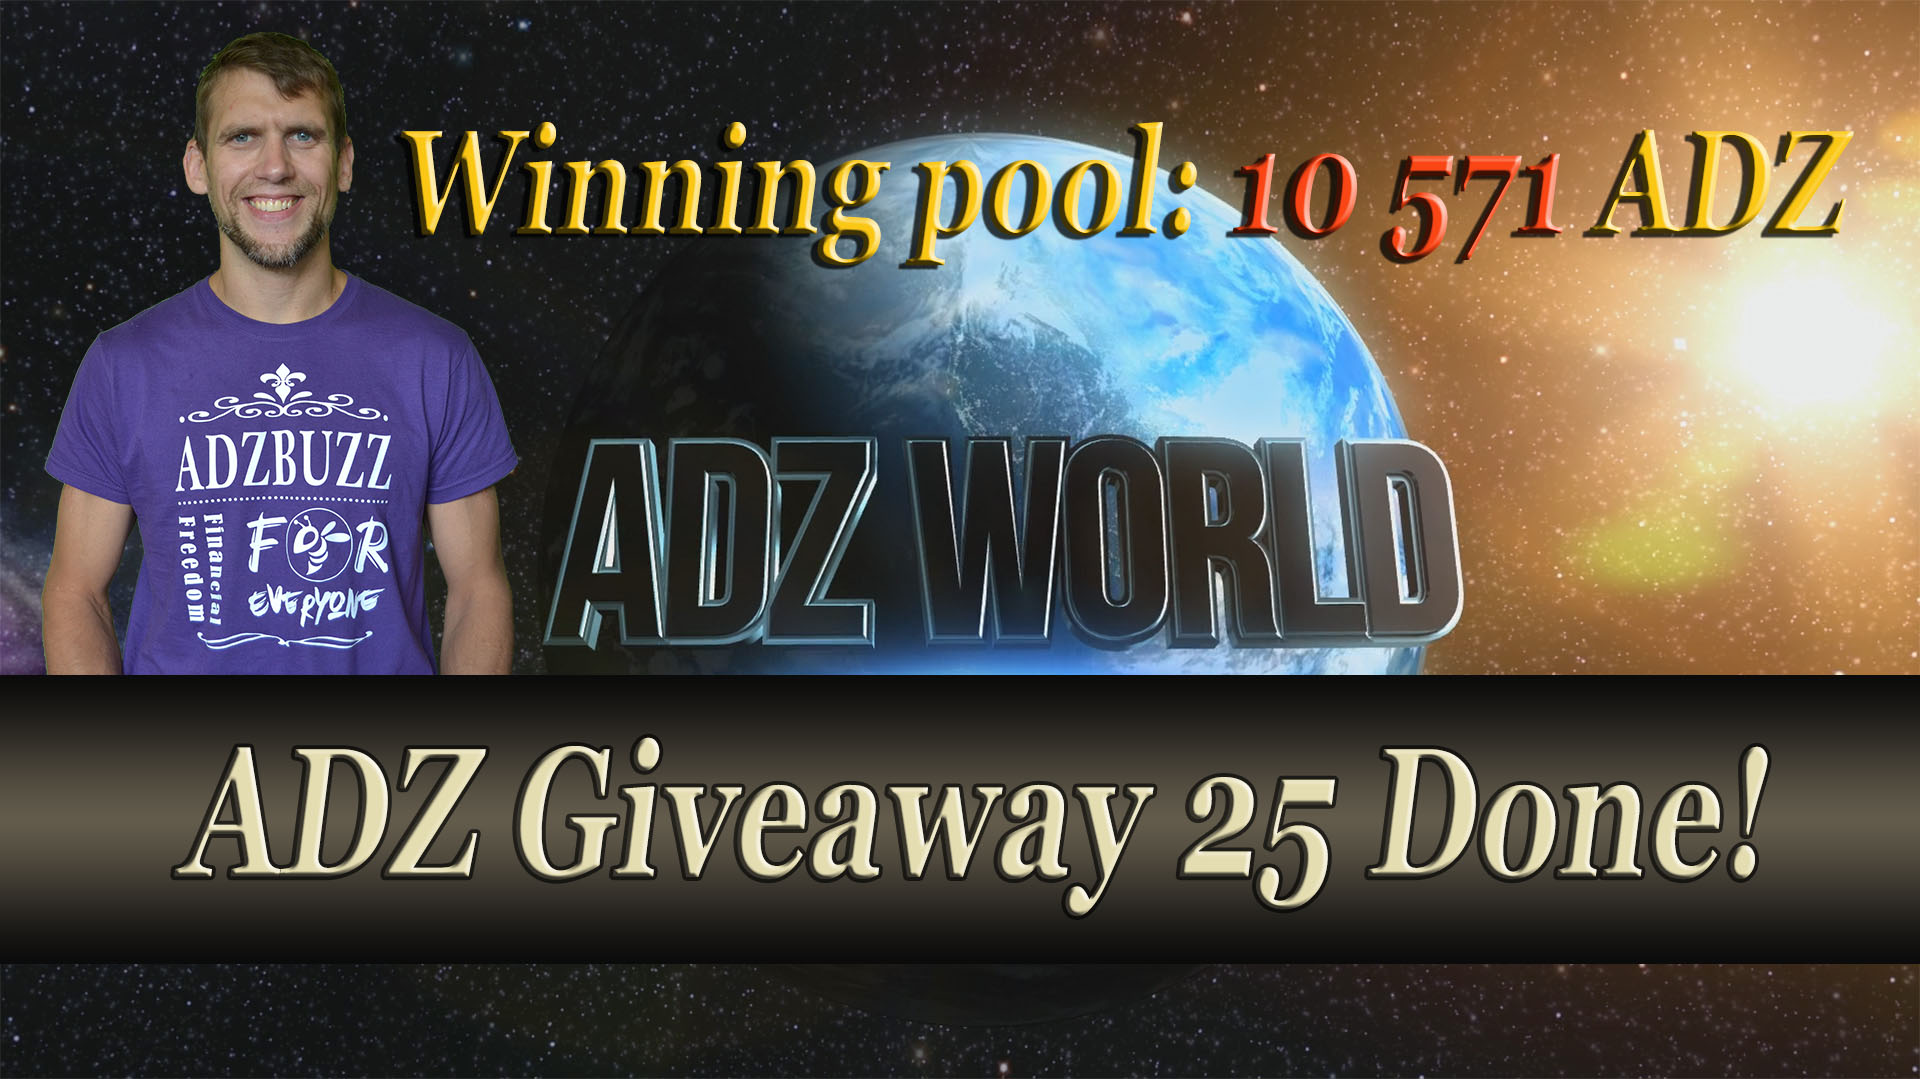 ADZ Giveaway 25 done! Winning pool over 10 000 ADZ